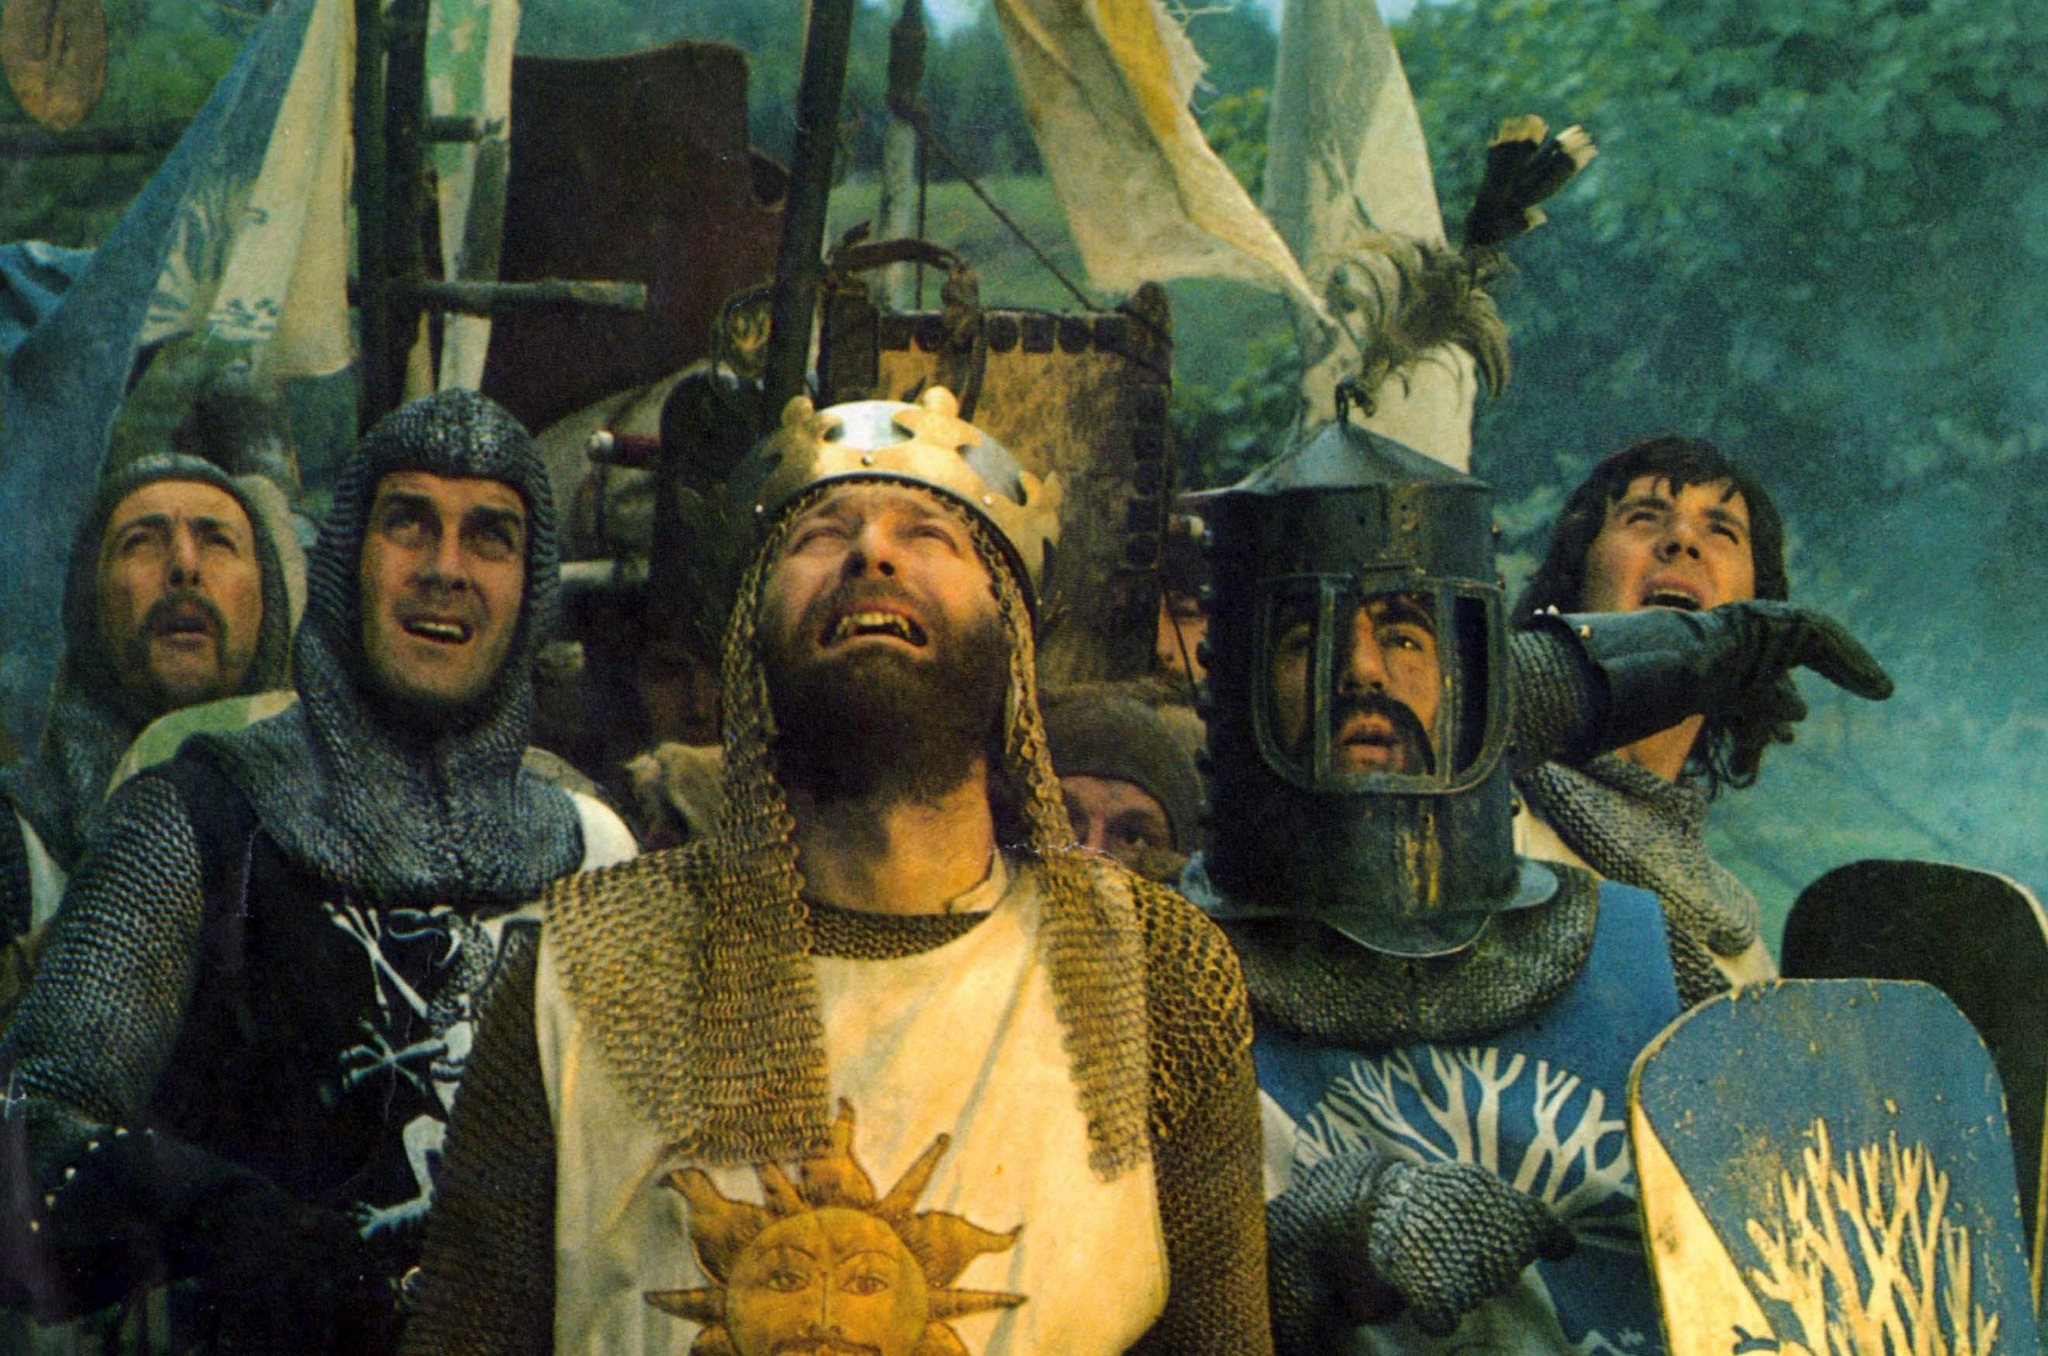 Funny films: Monty Python and the Holy Grail